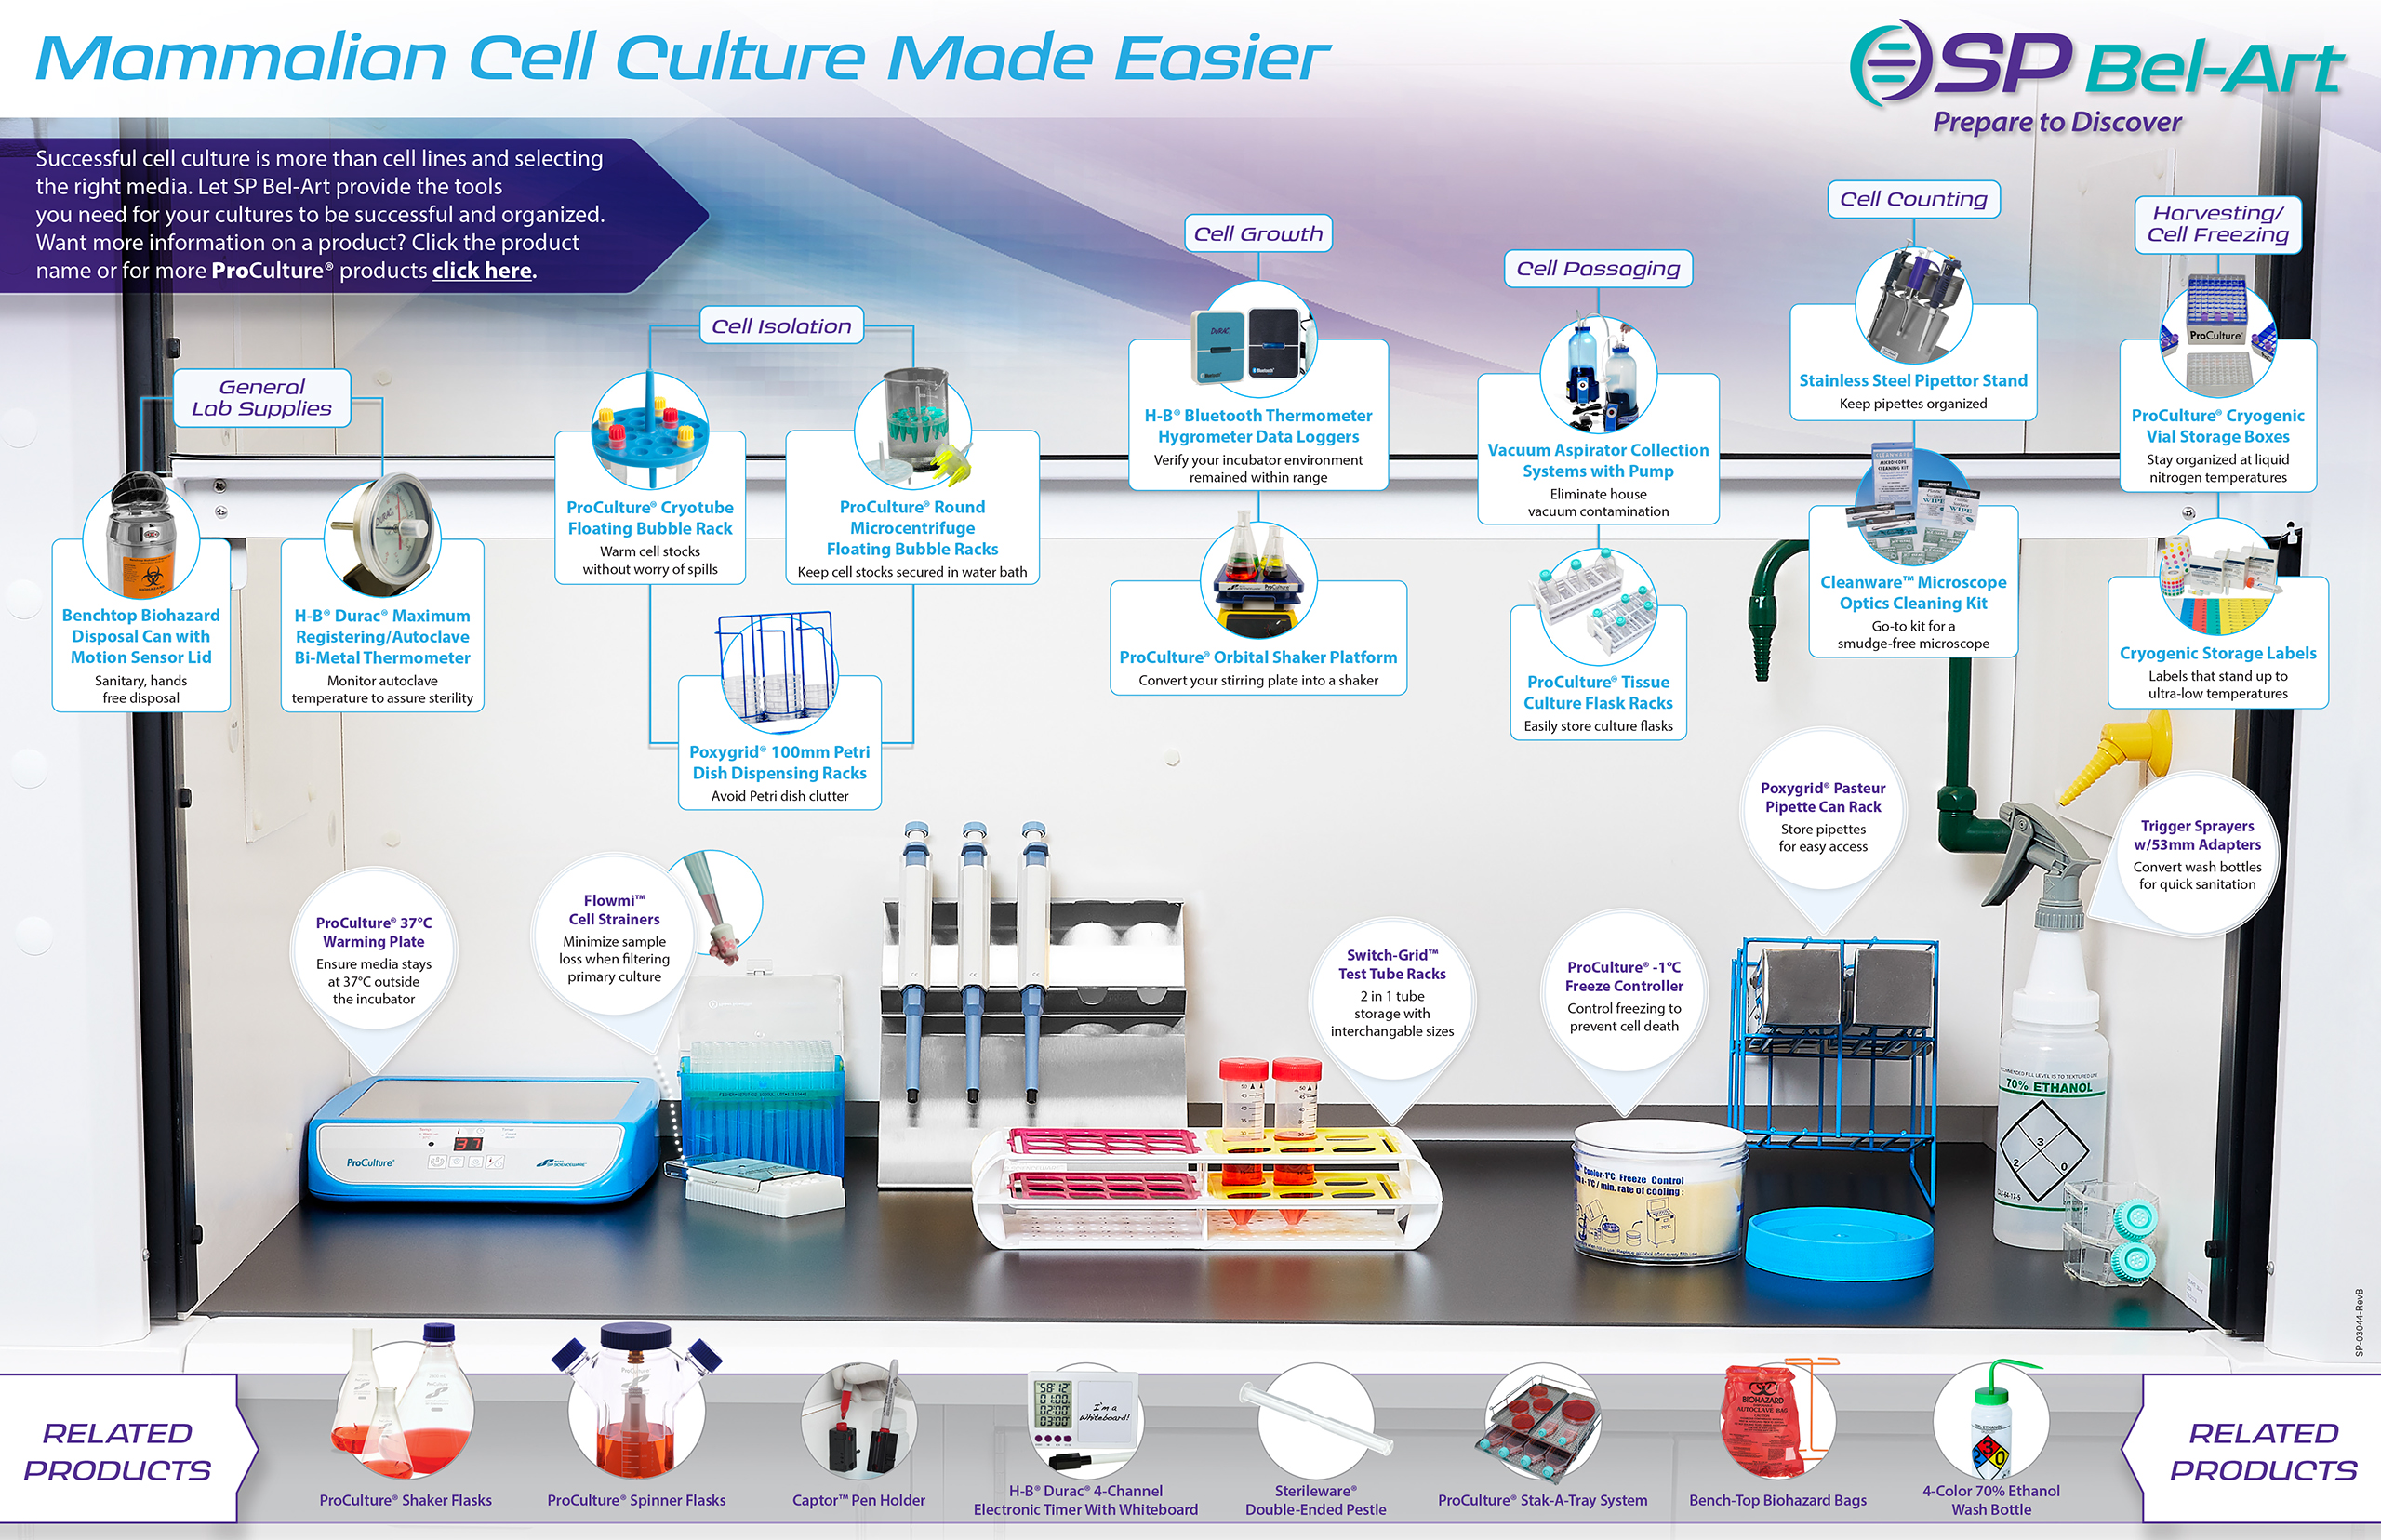 Image: Mammalian Cell Culture Made Simple